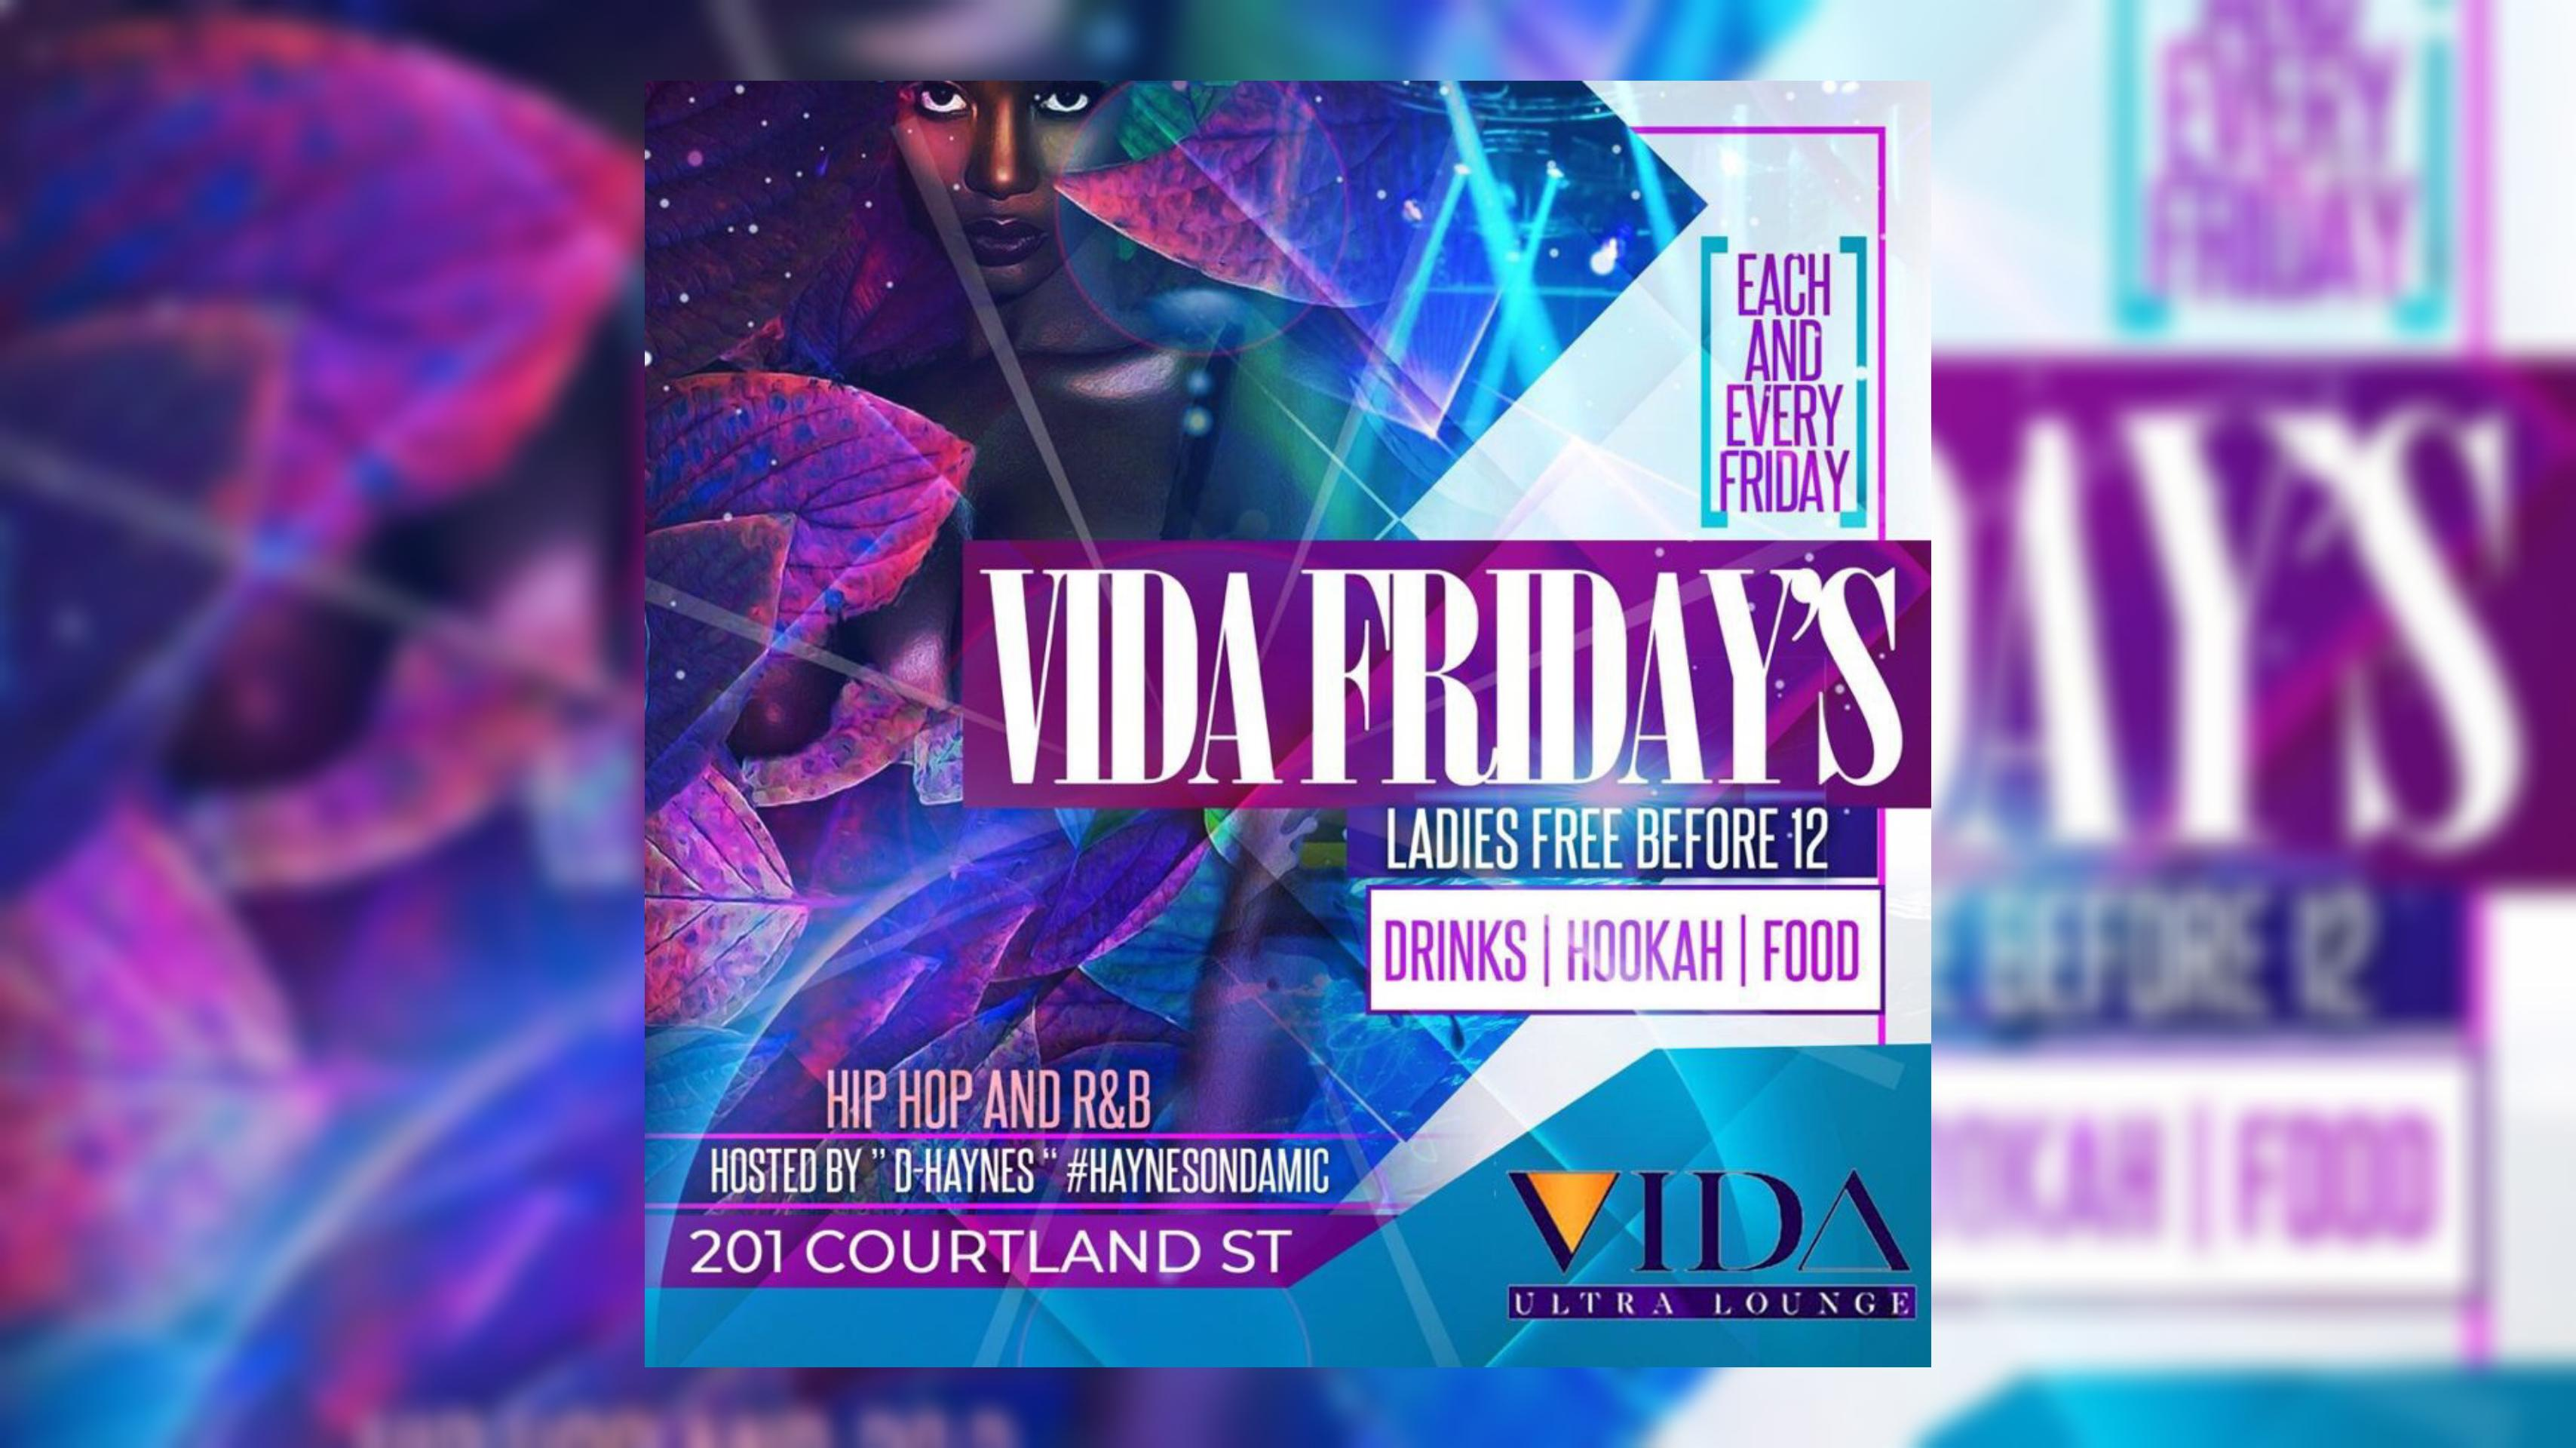 VIDA LOUNGE : #VidaFridays...FREE entry with RSVP...FREE BIRTHDAYS